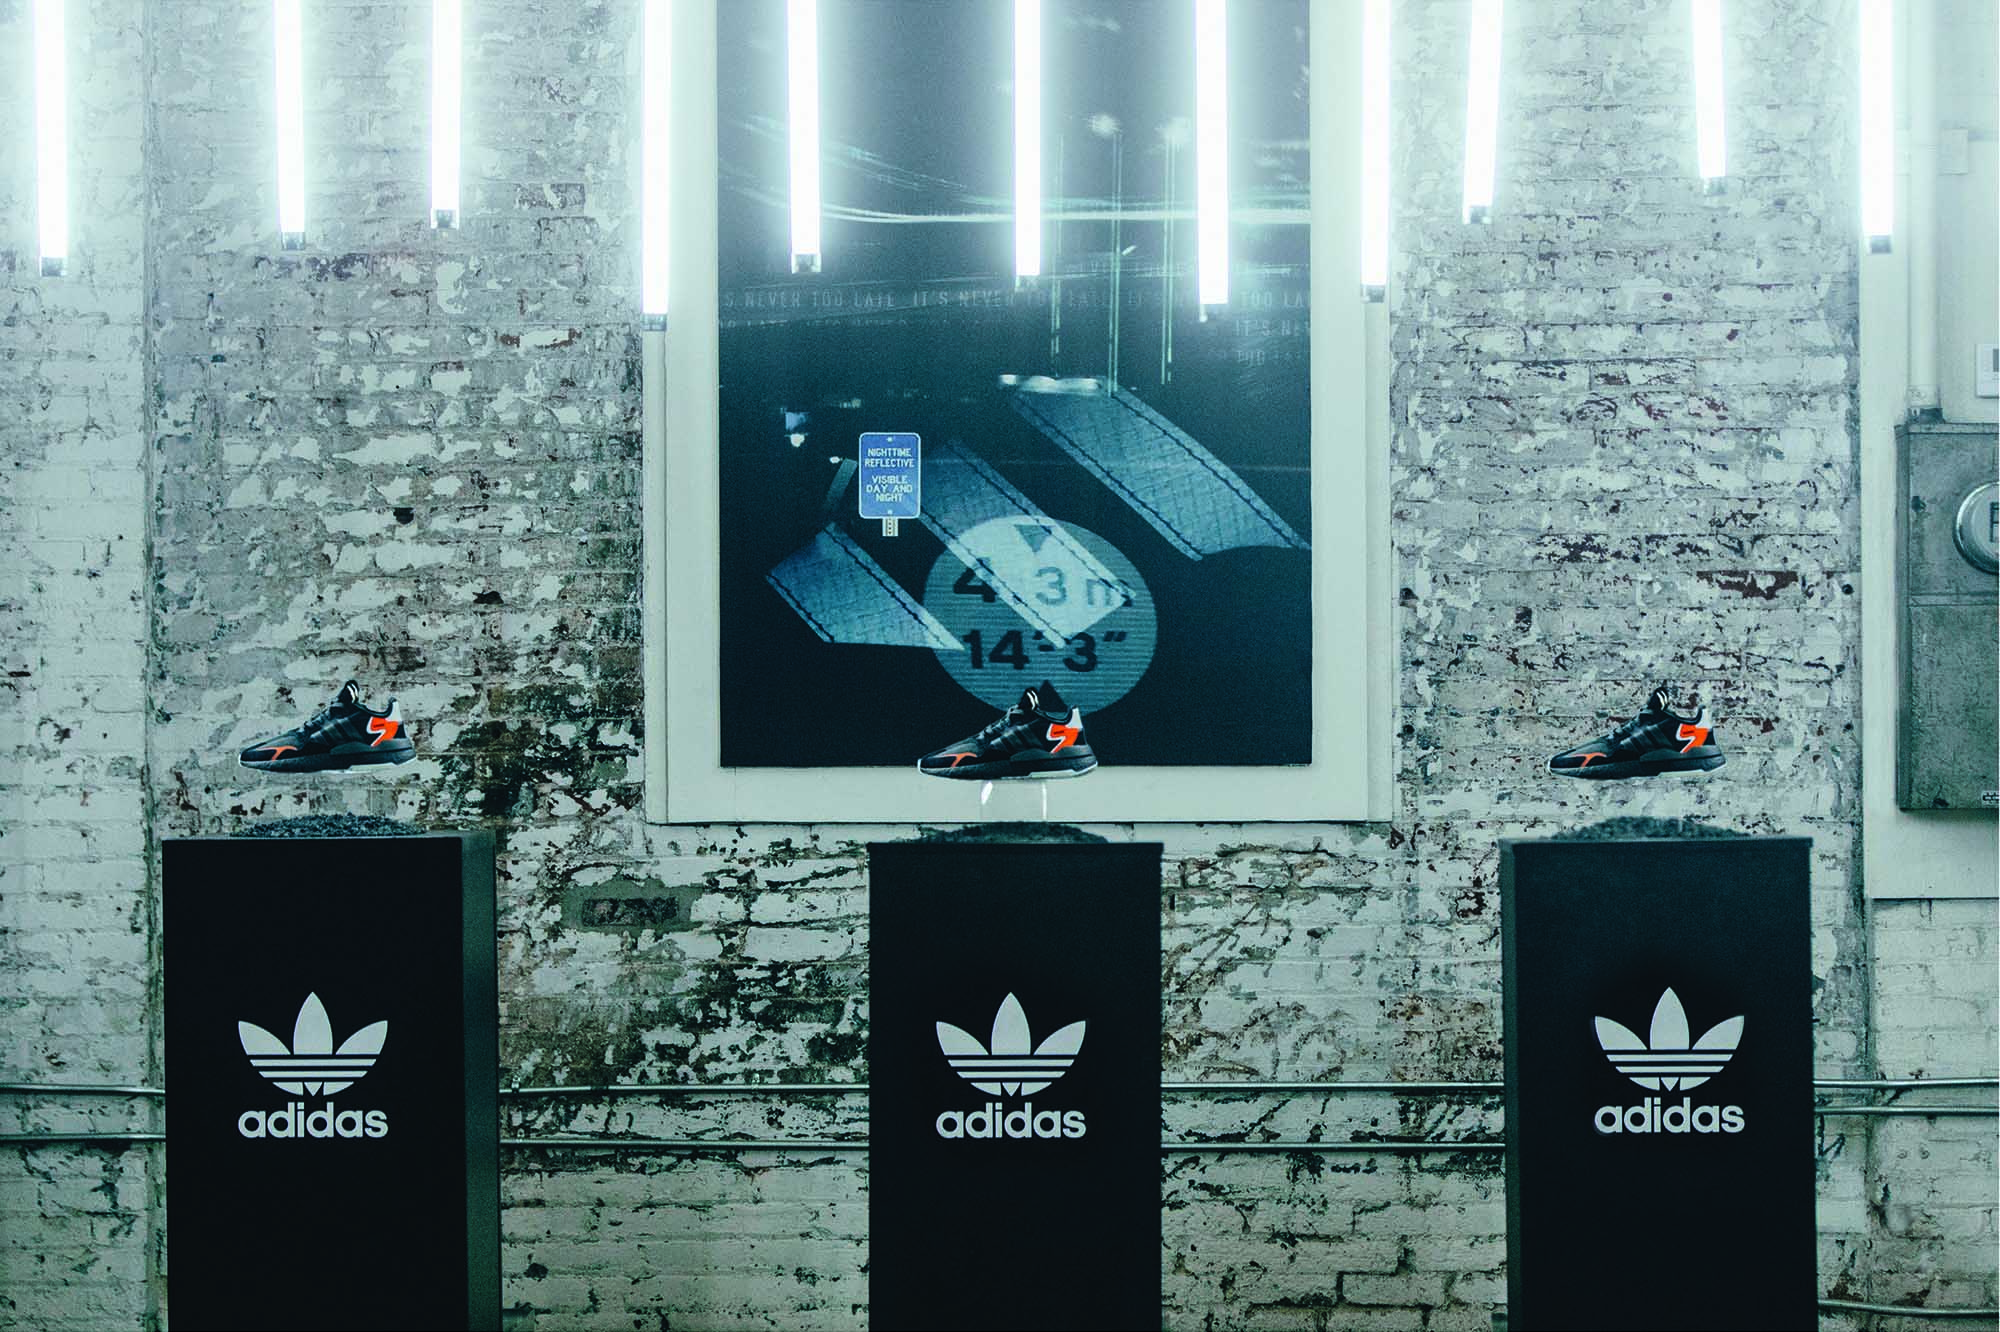 Adidas private event in honeypot